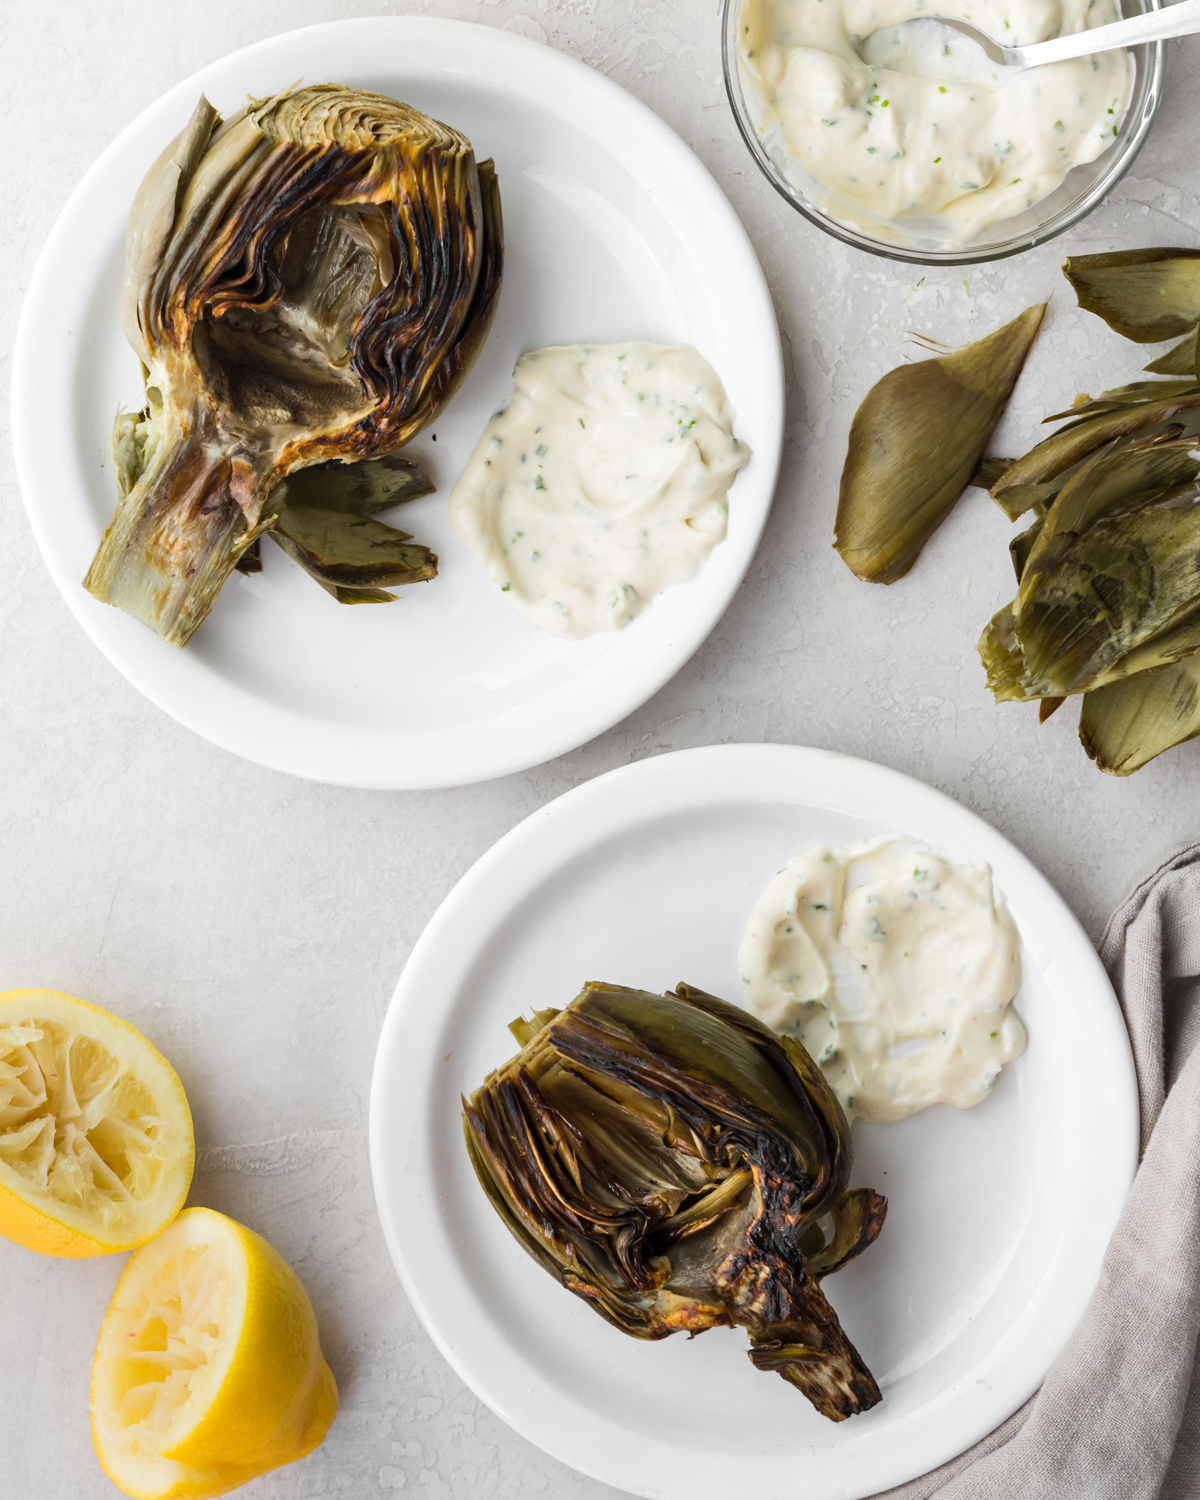 roasted artichokes with creamy chive dipping sauce